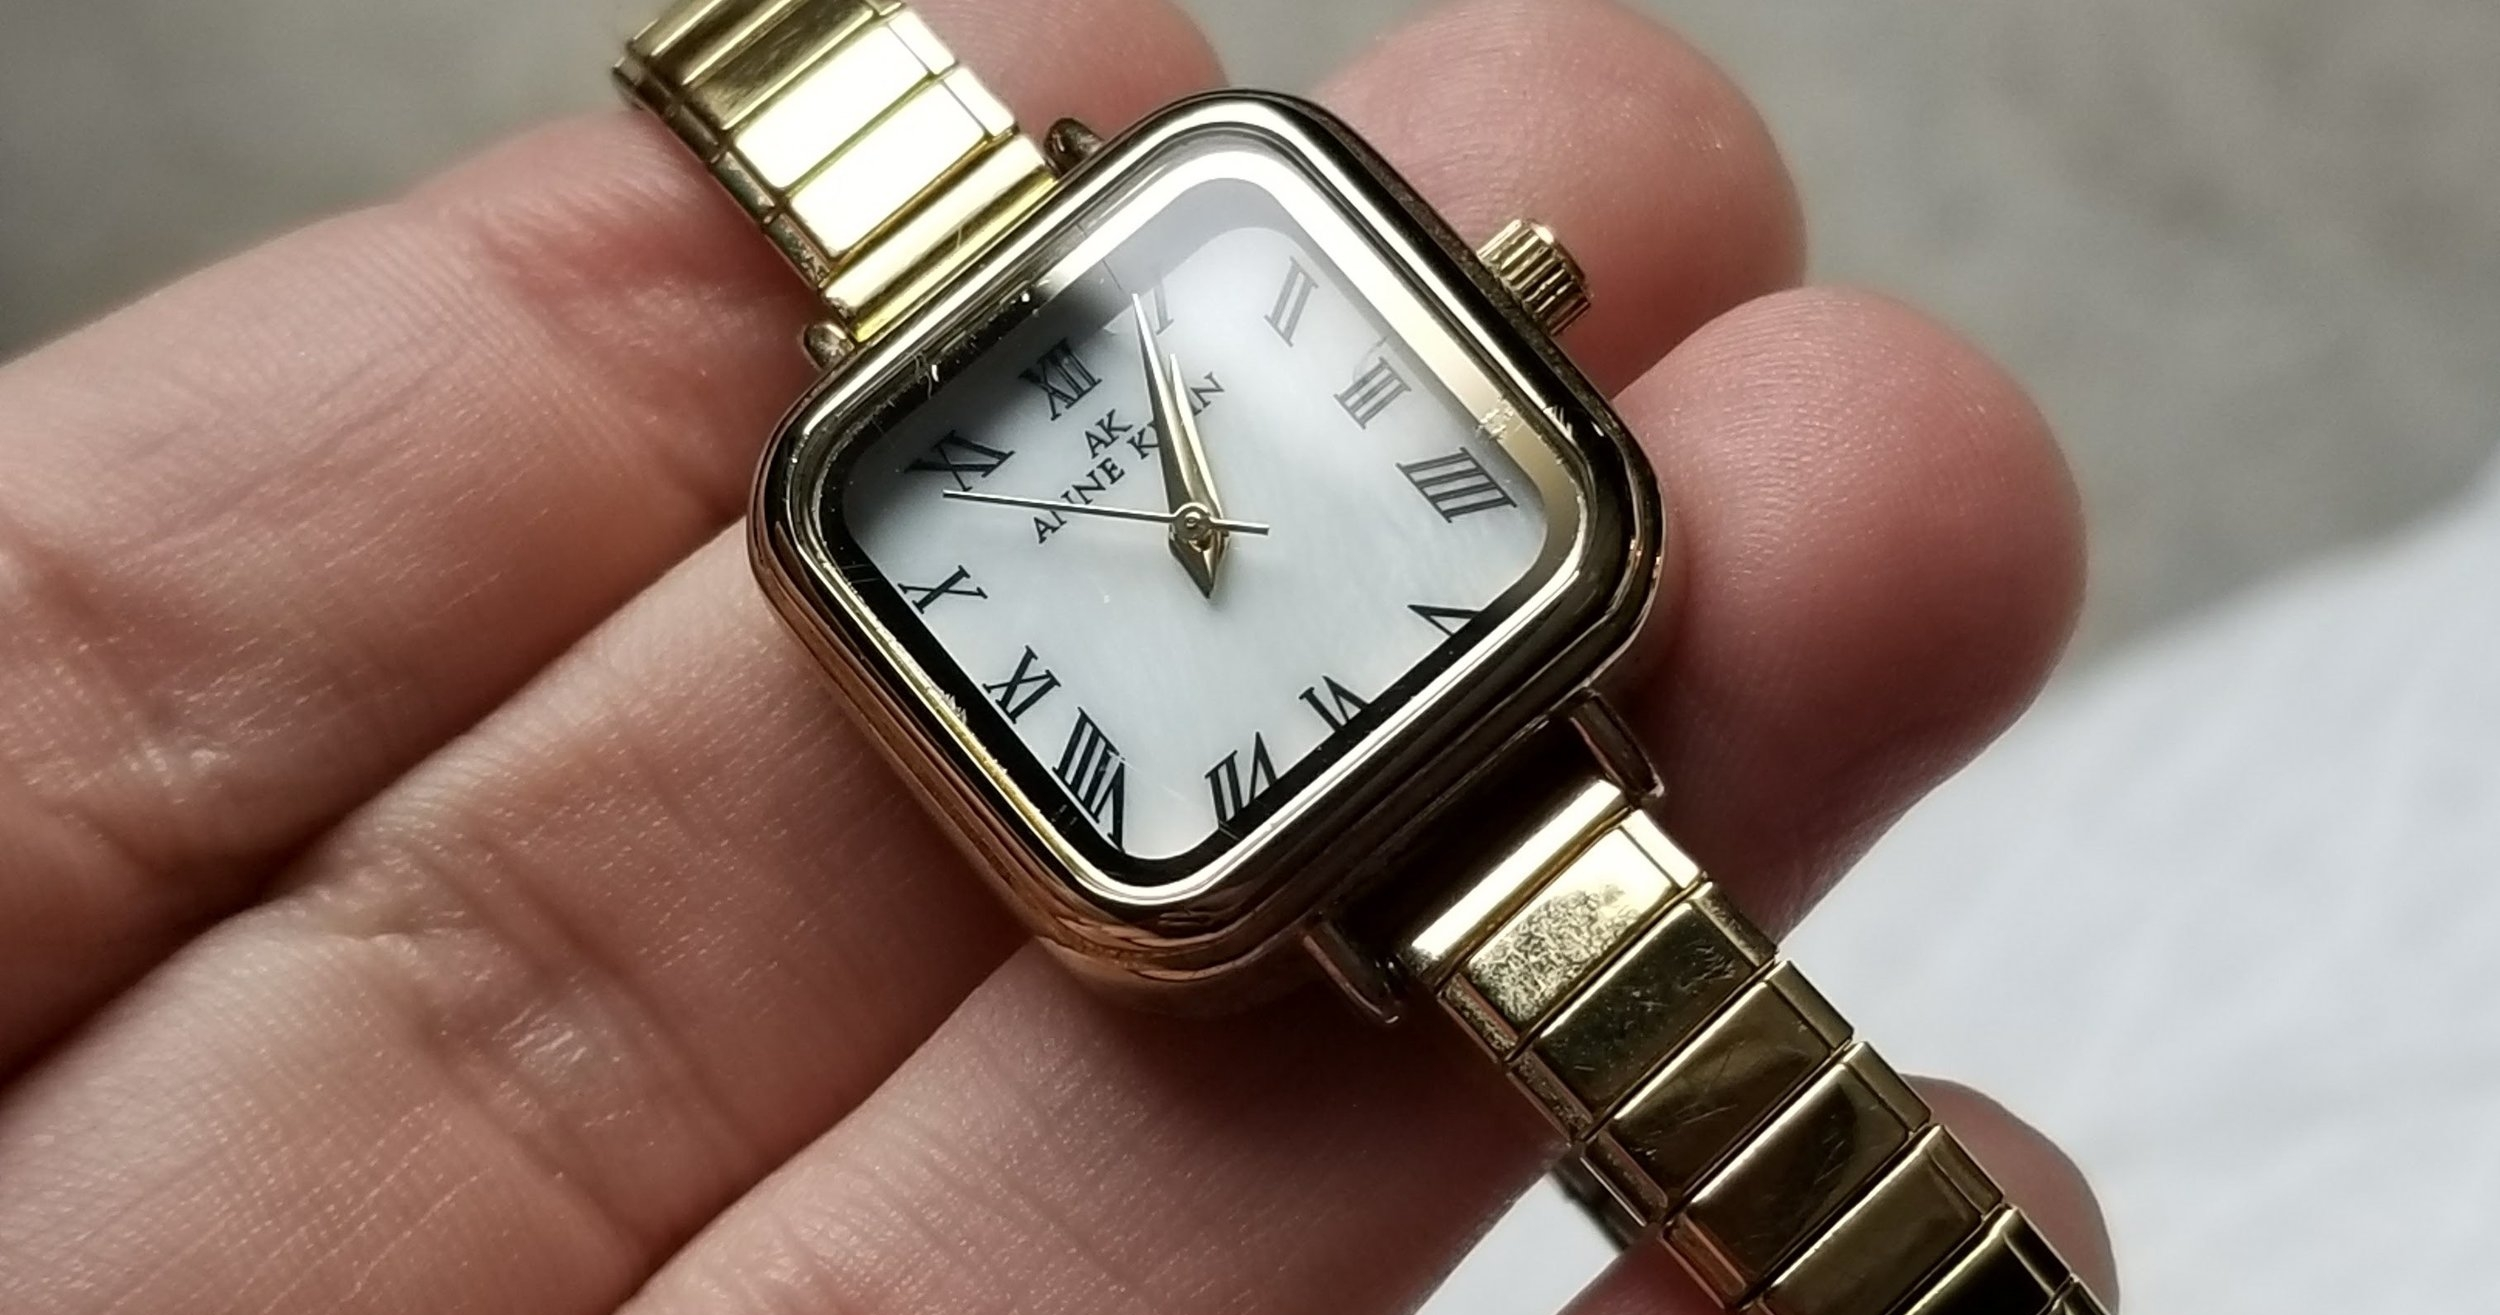 The Anne Klein expandy band watch.